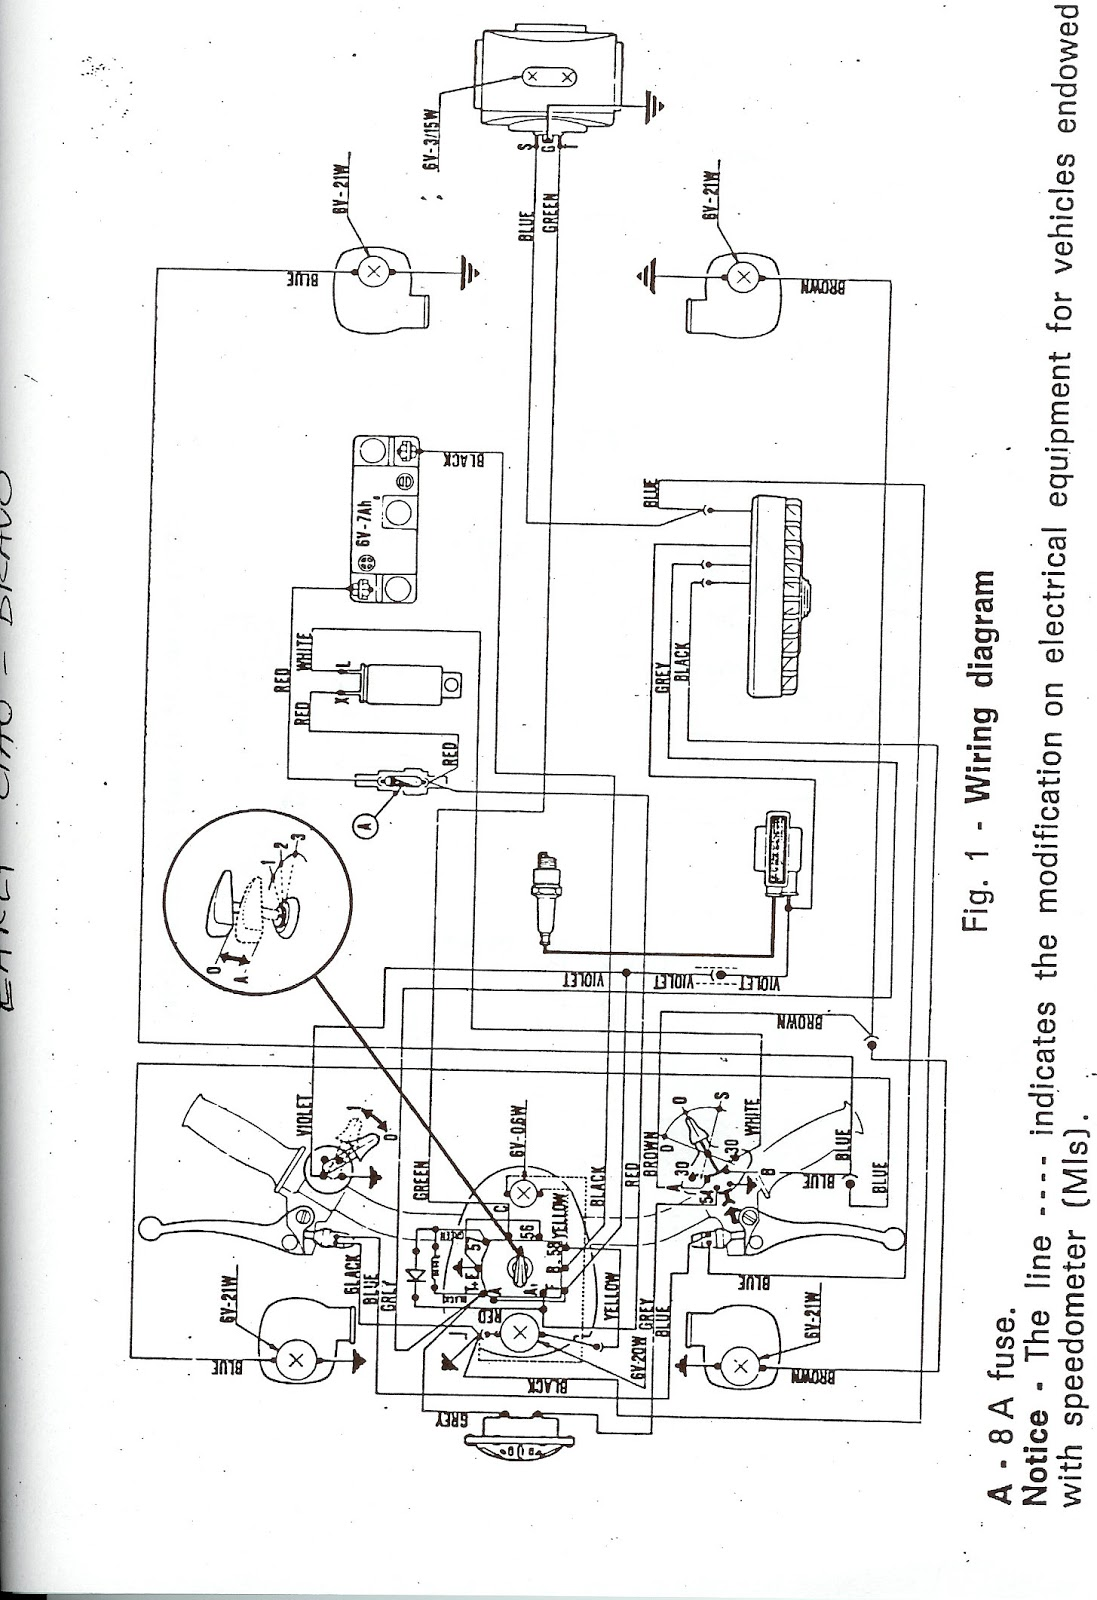 [DIAGRAM] Peugeot Boxer Radio Wiring Diagram FULL Version